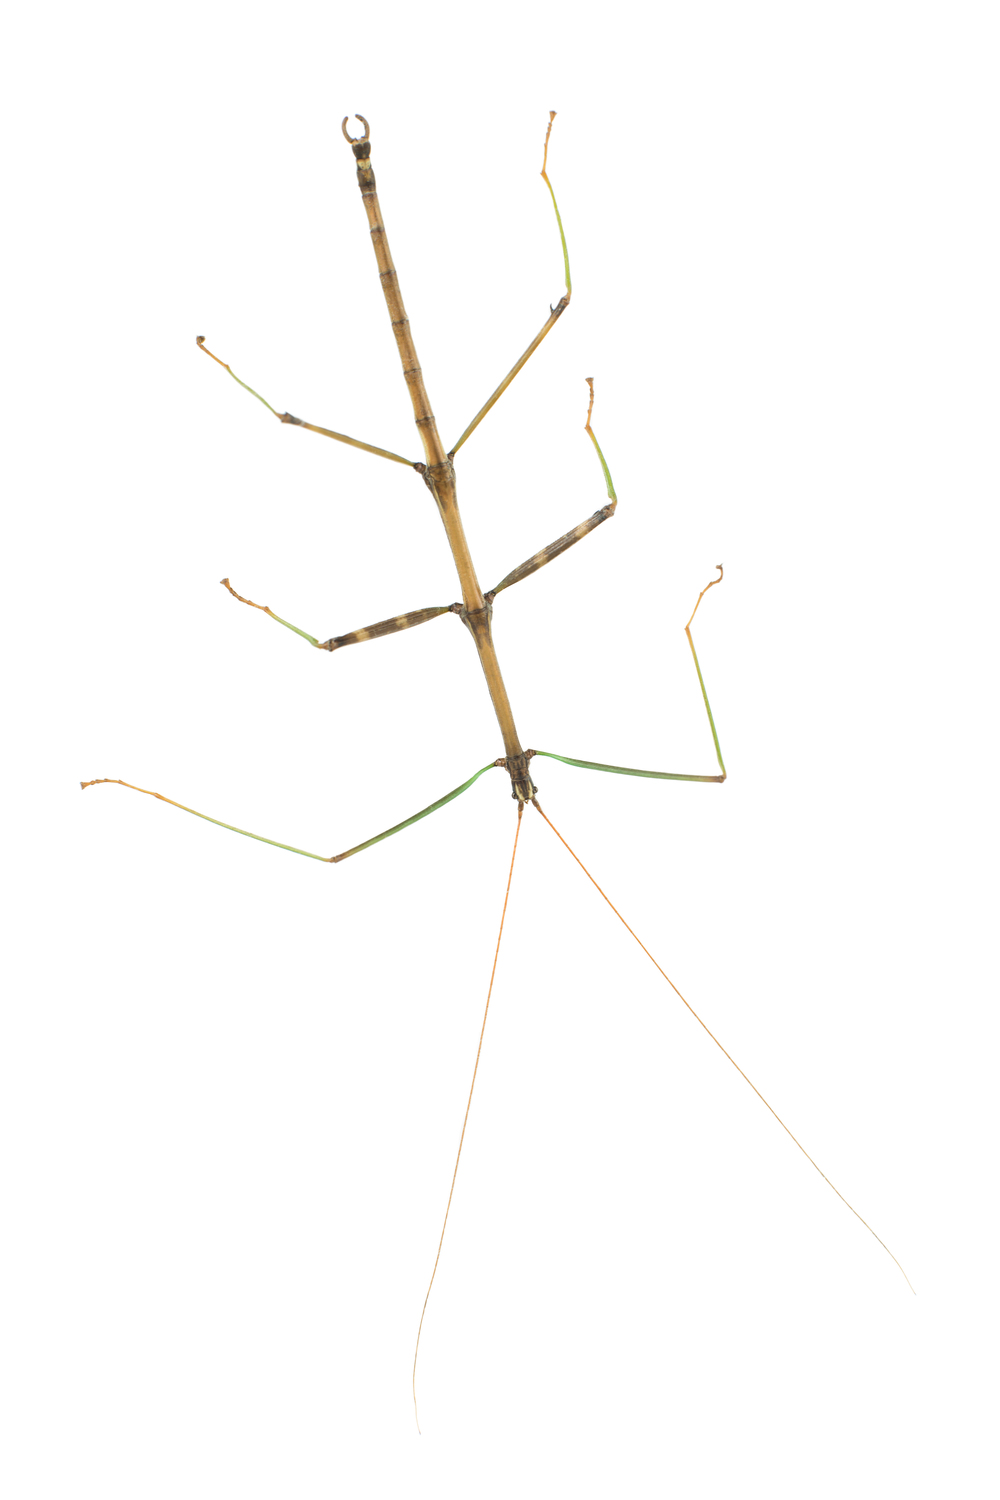 Diapheromera femorata- Common Walkingstick